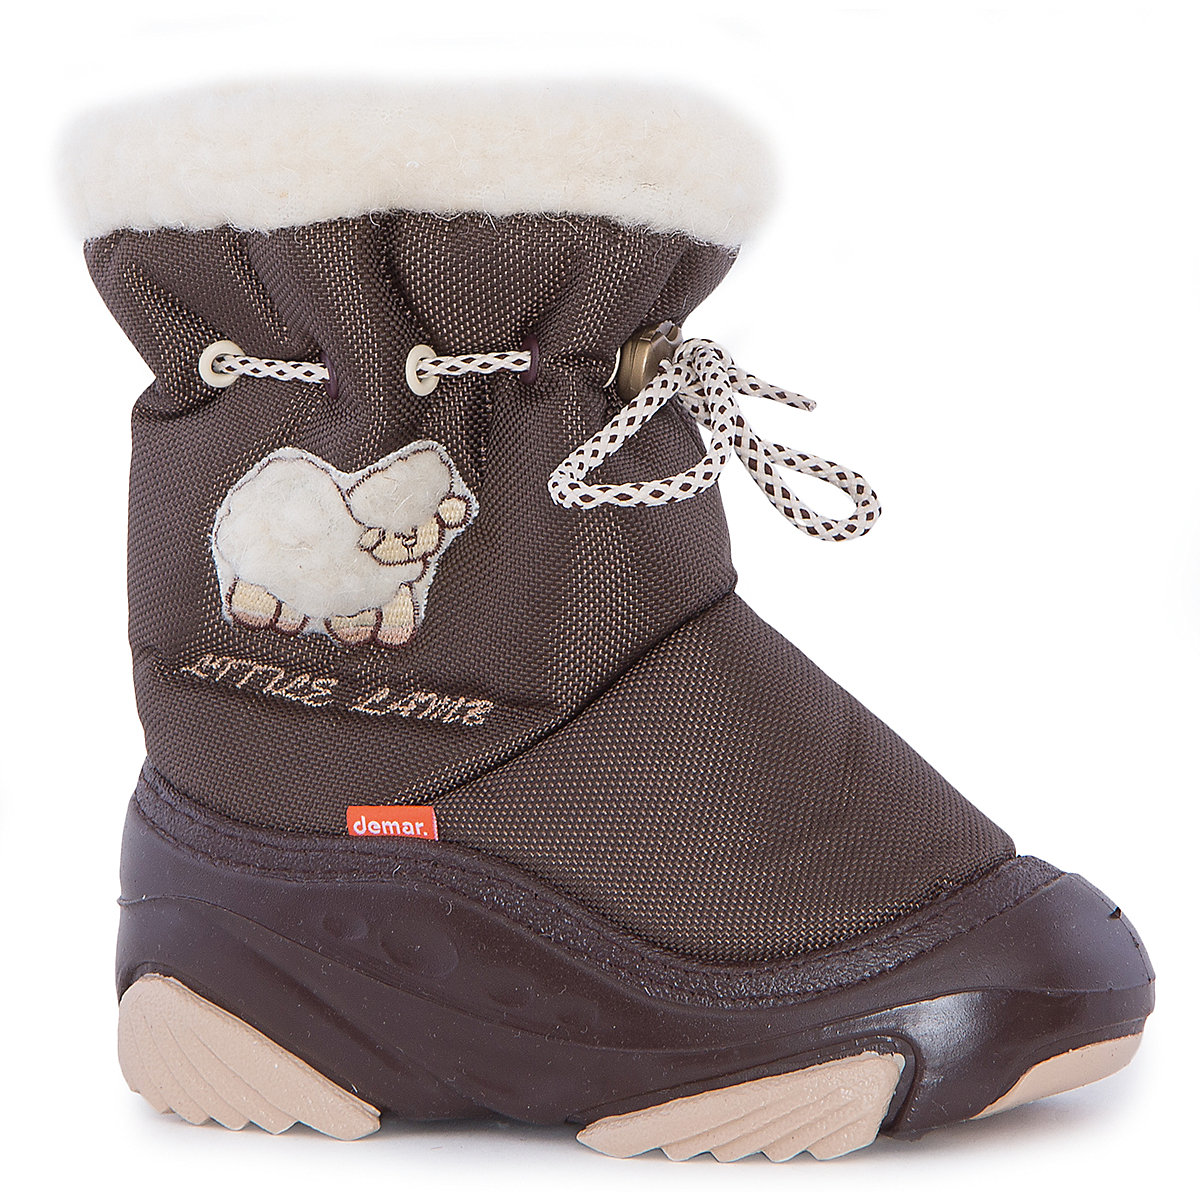 Boots Demar for boys and girls 6835035 Valenki Uggi Winter Baby Kids Children shoes